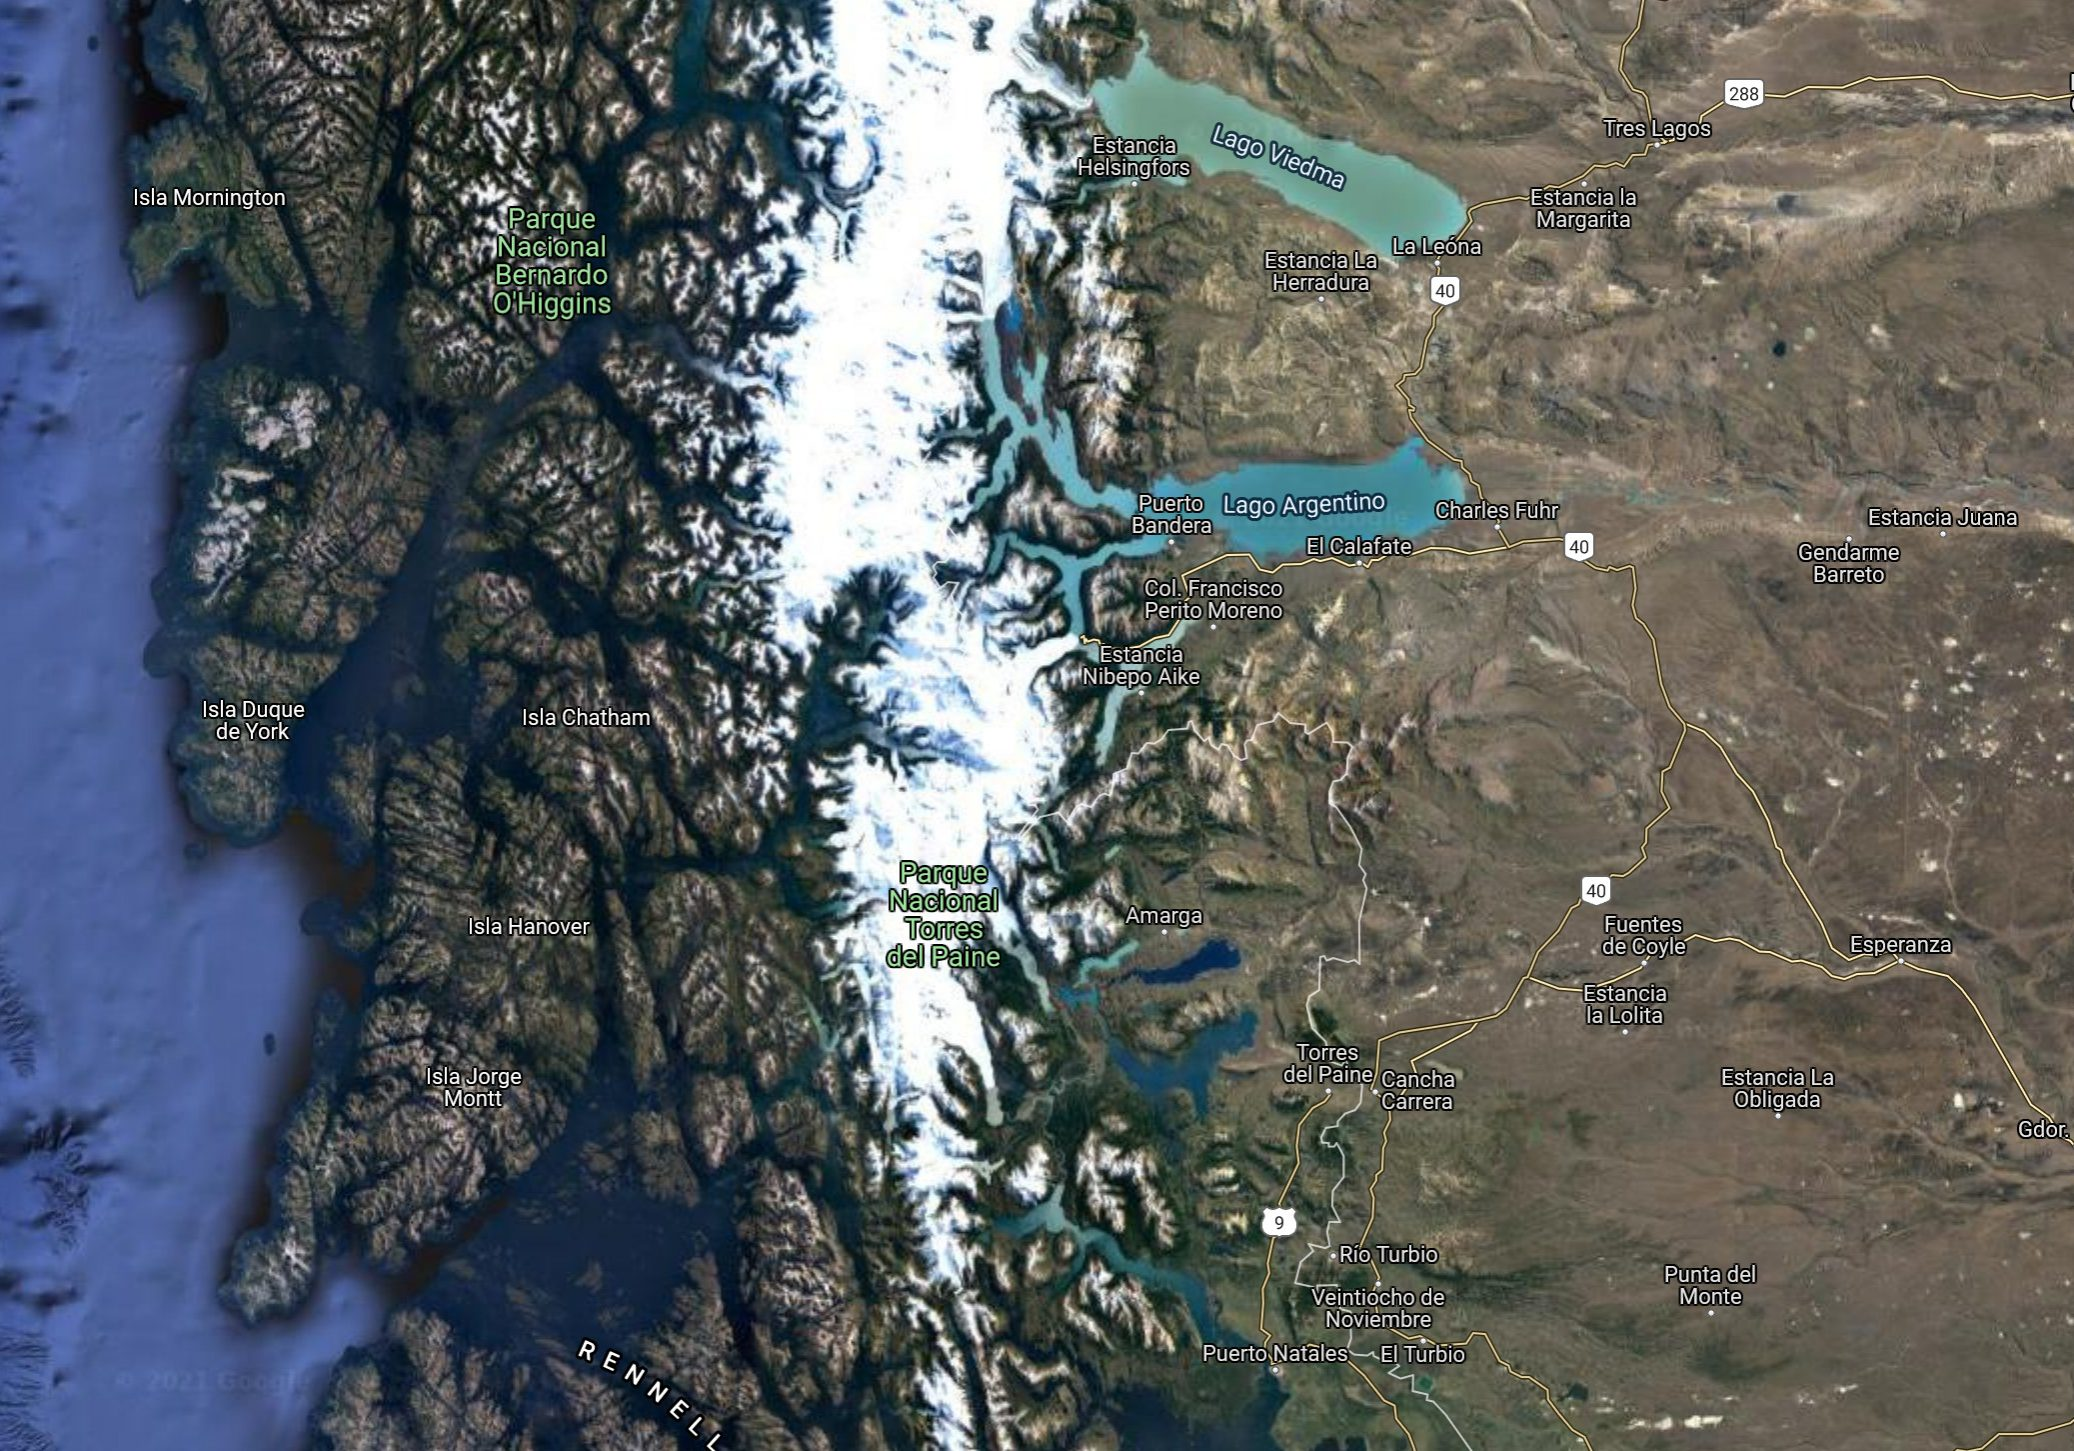 Patagonia and National Park of Torres Del Paine